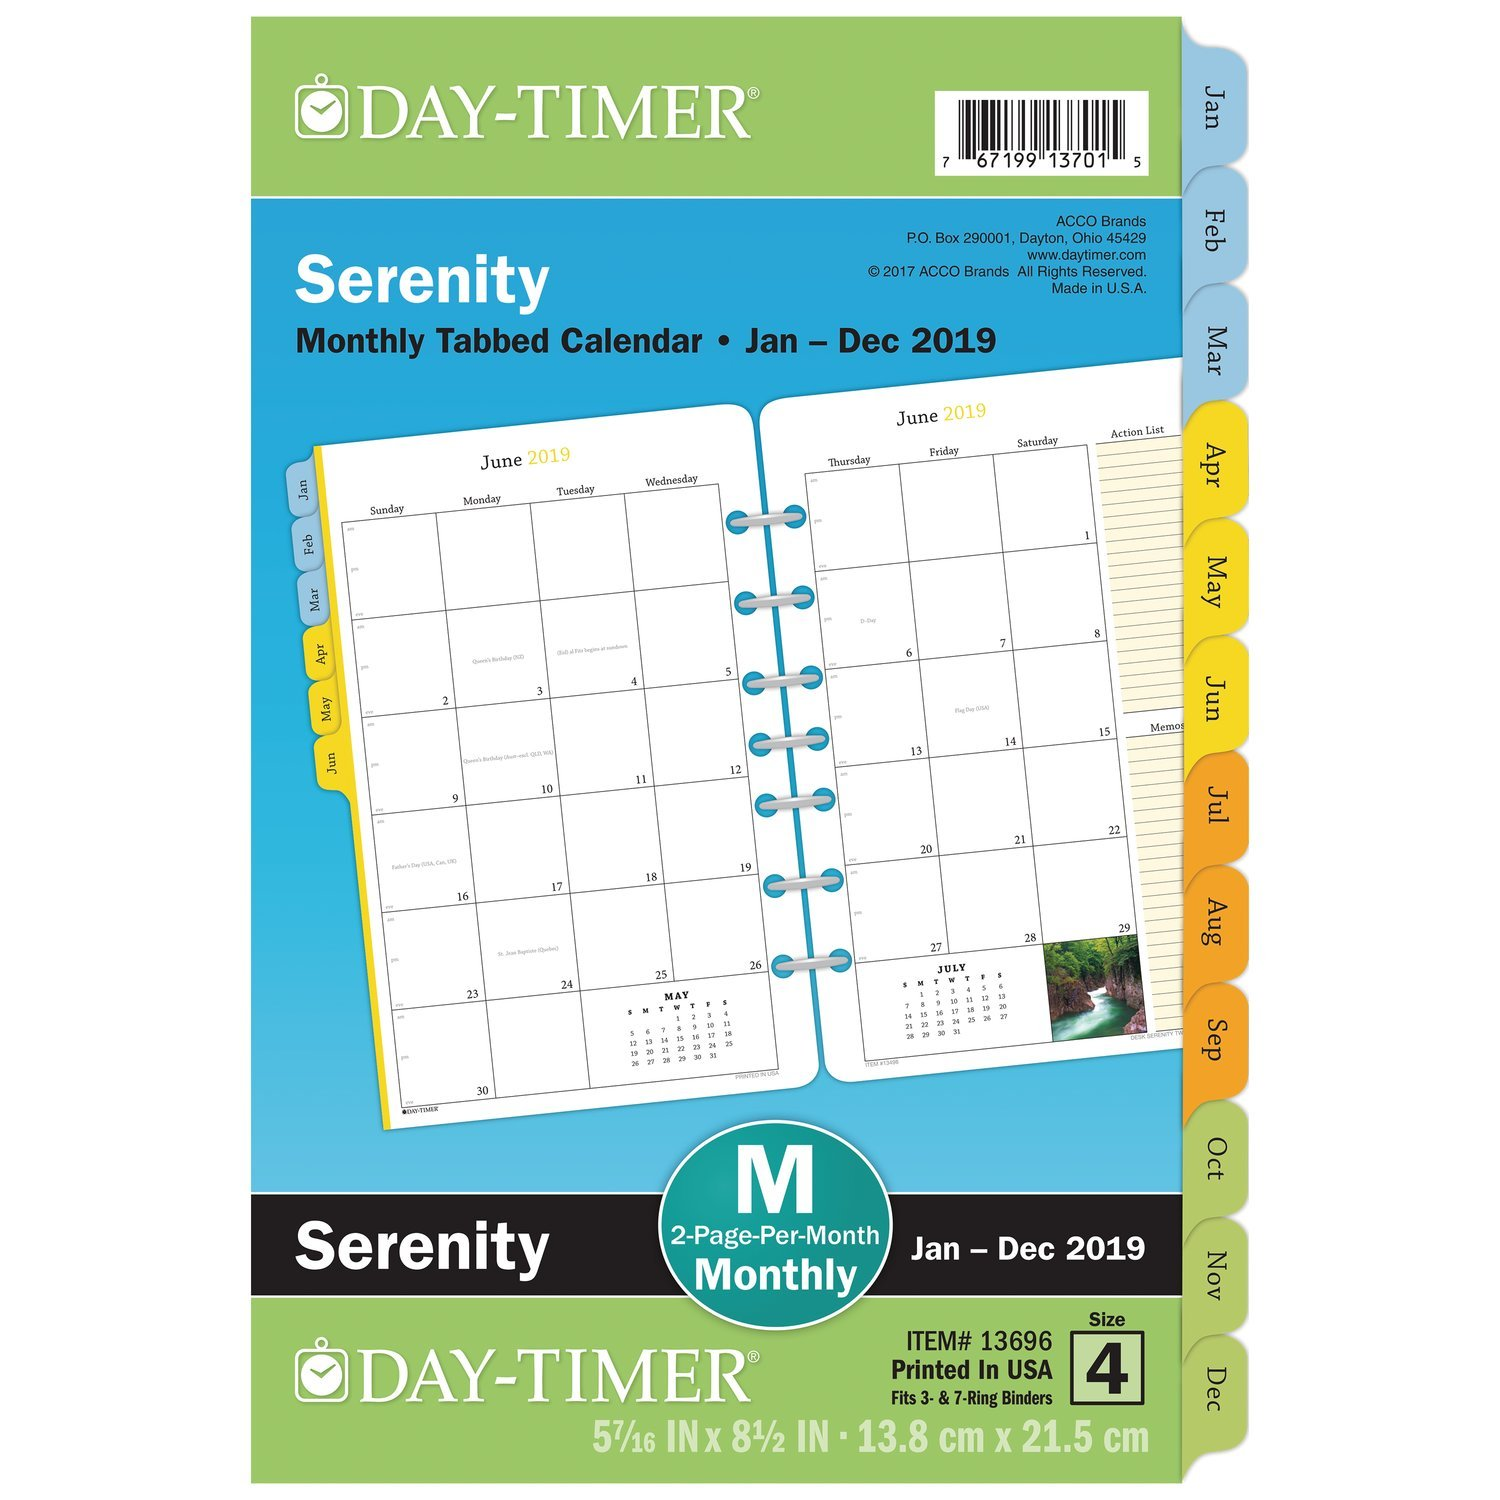 "Day-Timer 2019 Monthly Planner Refill, 5-1/2 x 8-1/2"", Desk Size 4, Loose Leaf, Two Pages Per Month, Serenity (13696) 5-1/2 x 8-1/2"" ACCO Brands 136961901"